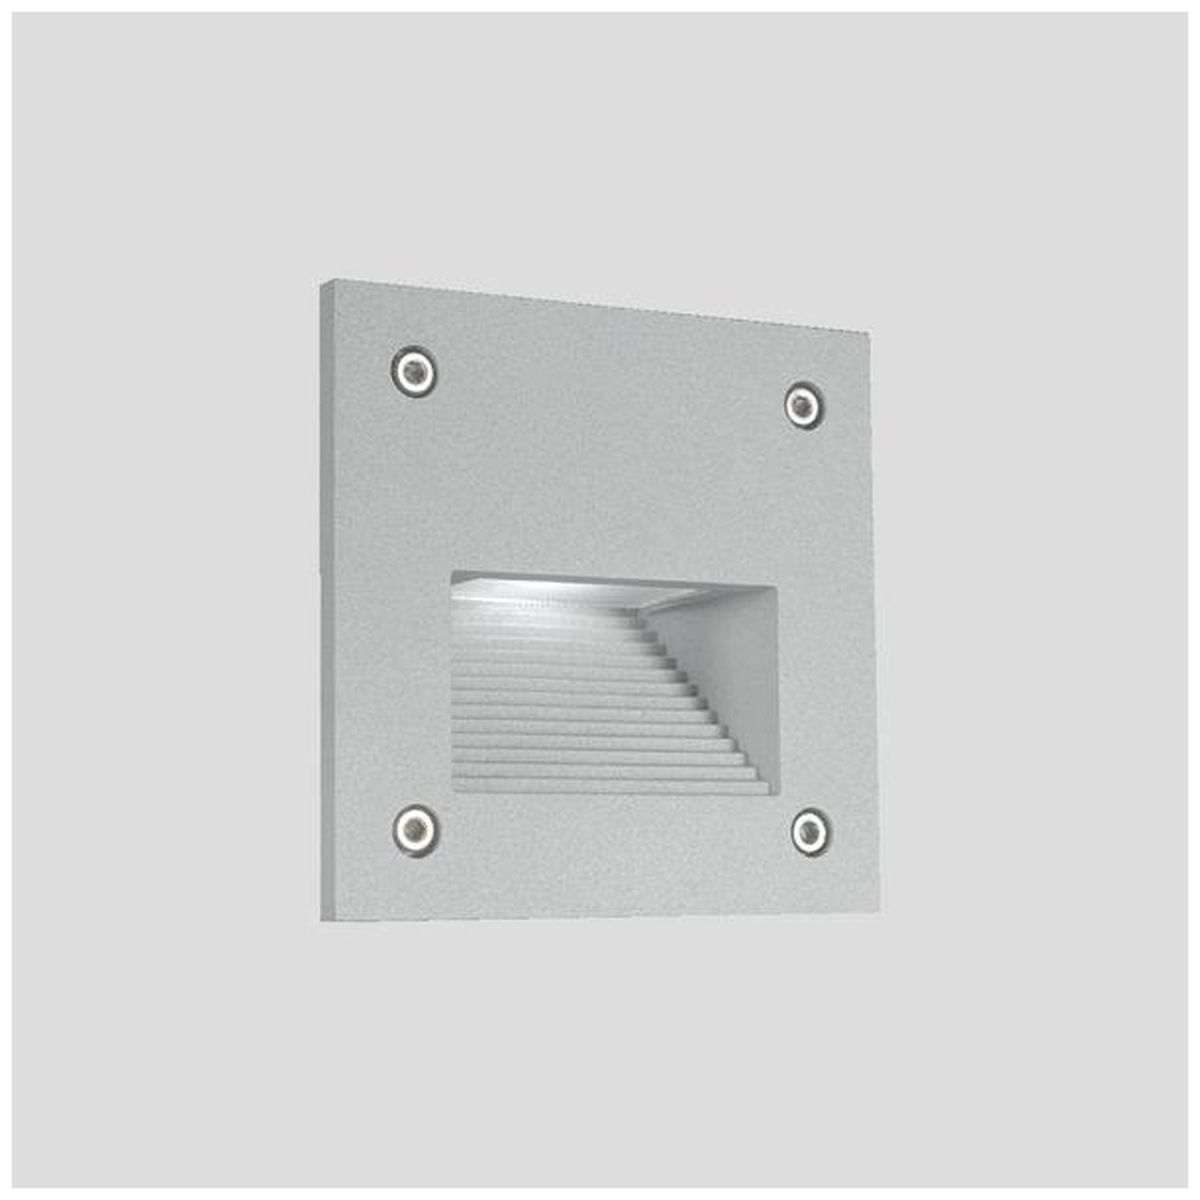 LED-muuri-/porrasvalaisin LedStore In-Wall Out 3W IP55